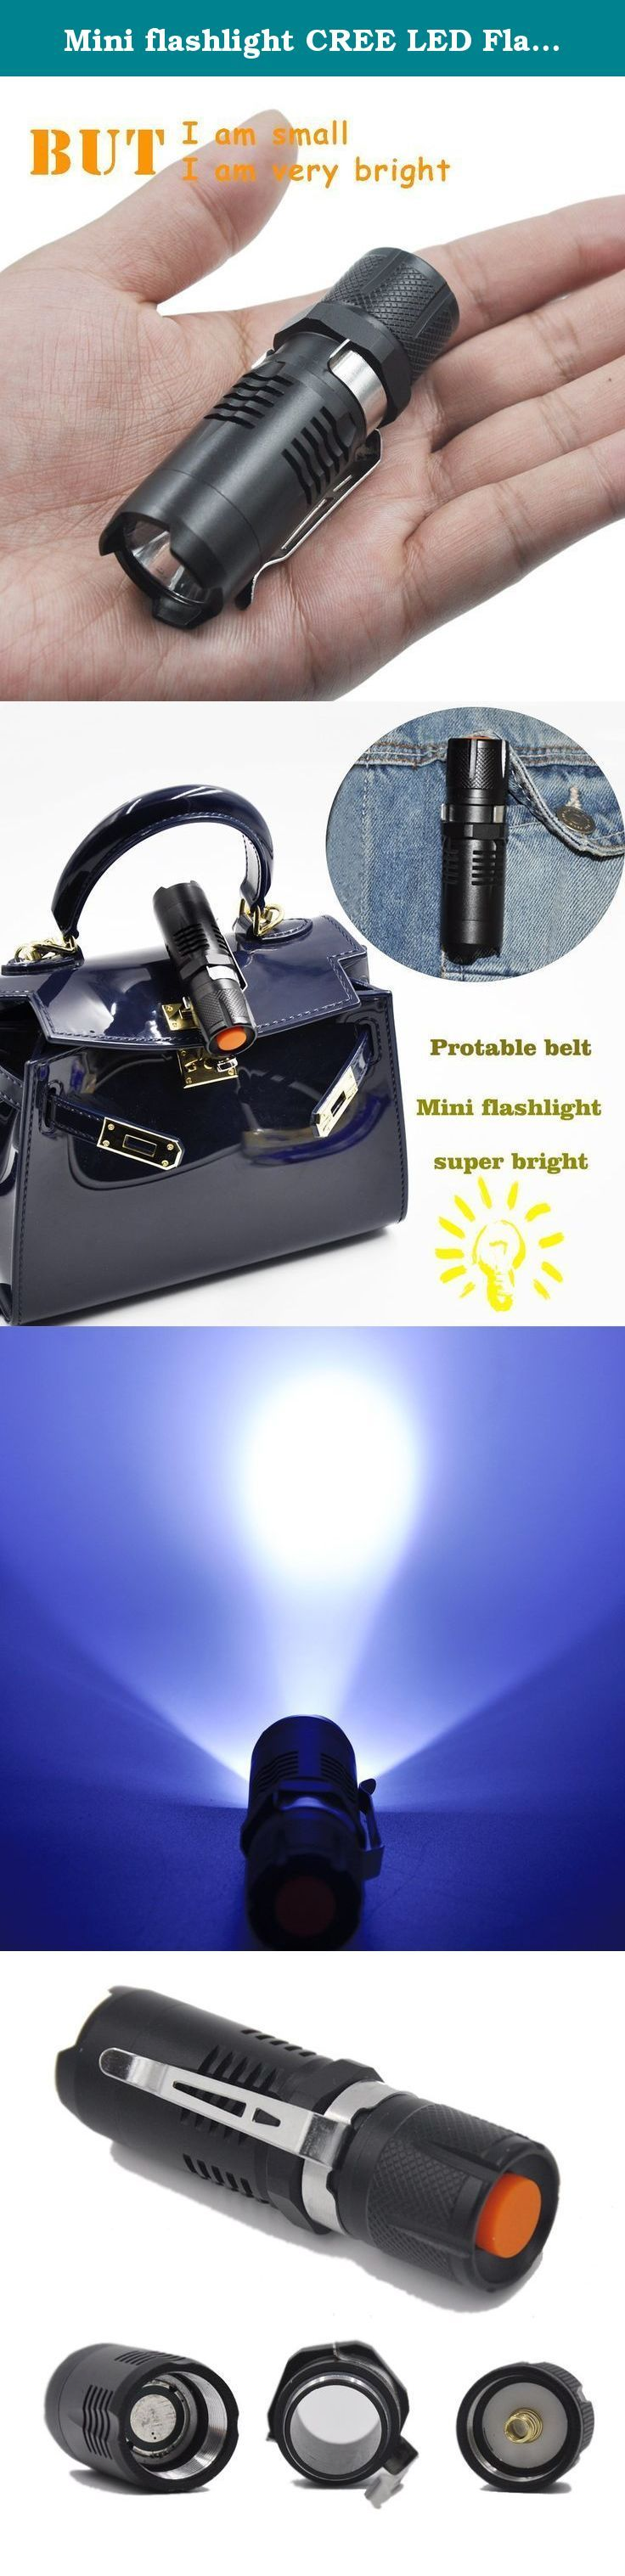 Mini flashlight CREE LED Flashlight 3 Mode Super bright lightweight flashlight torch,Power by 16340 Battery (Not includede). Light: LED CREE Philips Color: Black Mode: 3 Modes Highlight flux: 1000 Lumens Maximum range: 100-1000 Metres Material: Aluminium Alloy Battery: 16340 Led lifespan: 100,000 hours Lighting Time: 2-10 hours Focus: Yes Waterproof: 13m Rechargeable: Yes Charging Time: 5 Hours Weight: 140g Size: Length: 8.4cm Head Width: 2.5cm Body Width: 2.6cm .